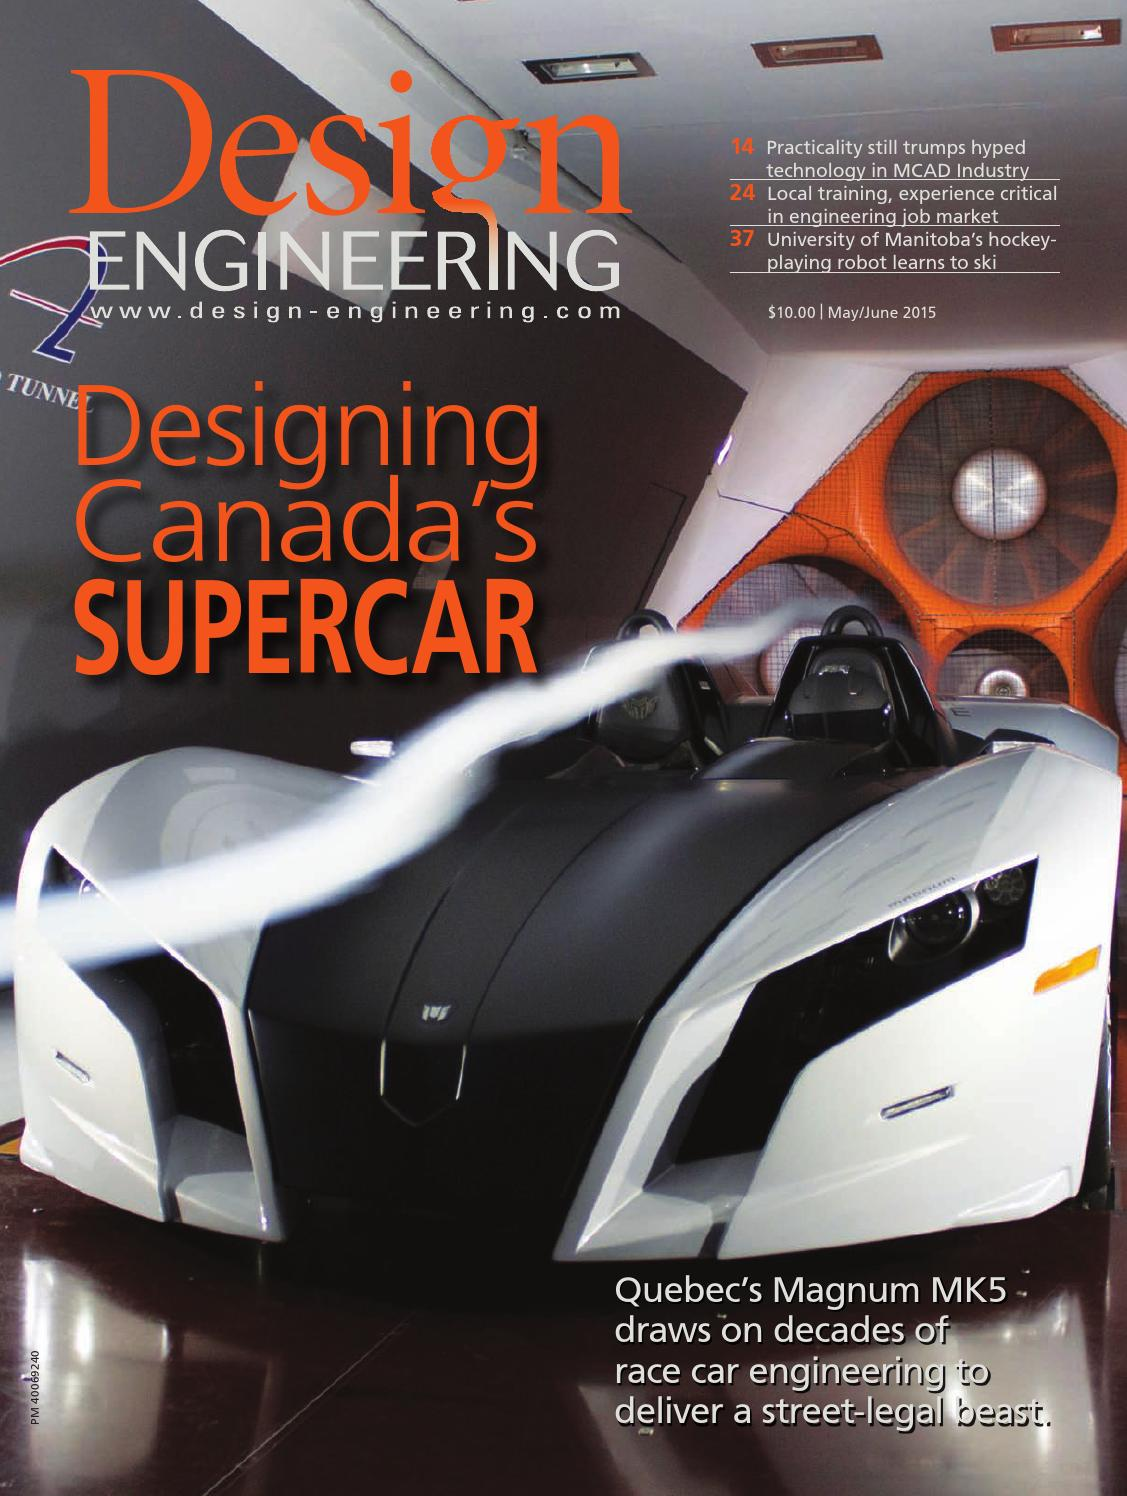 Design Engineering May June 2015 By Annex Business Media Issuu